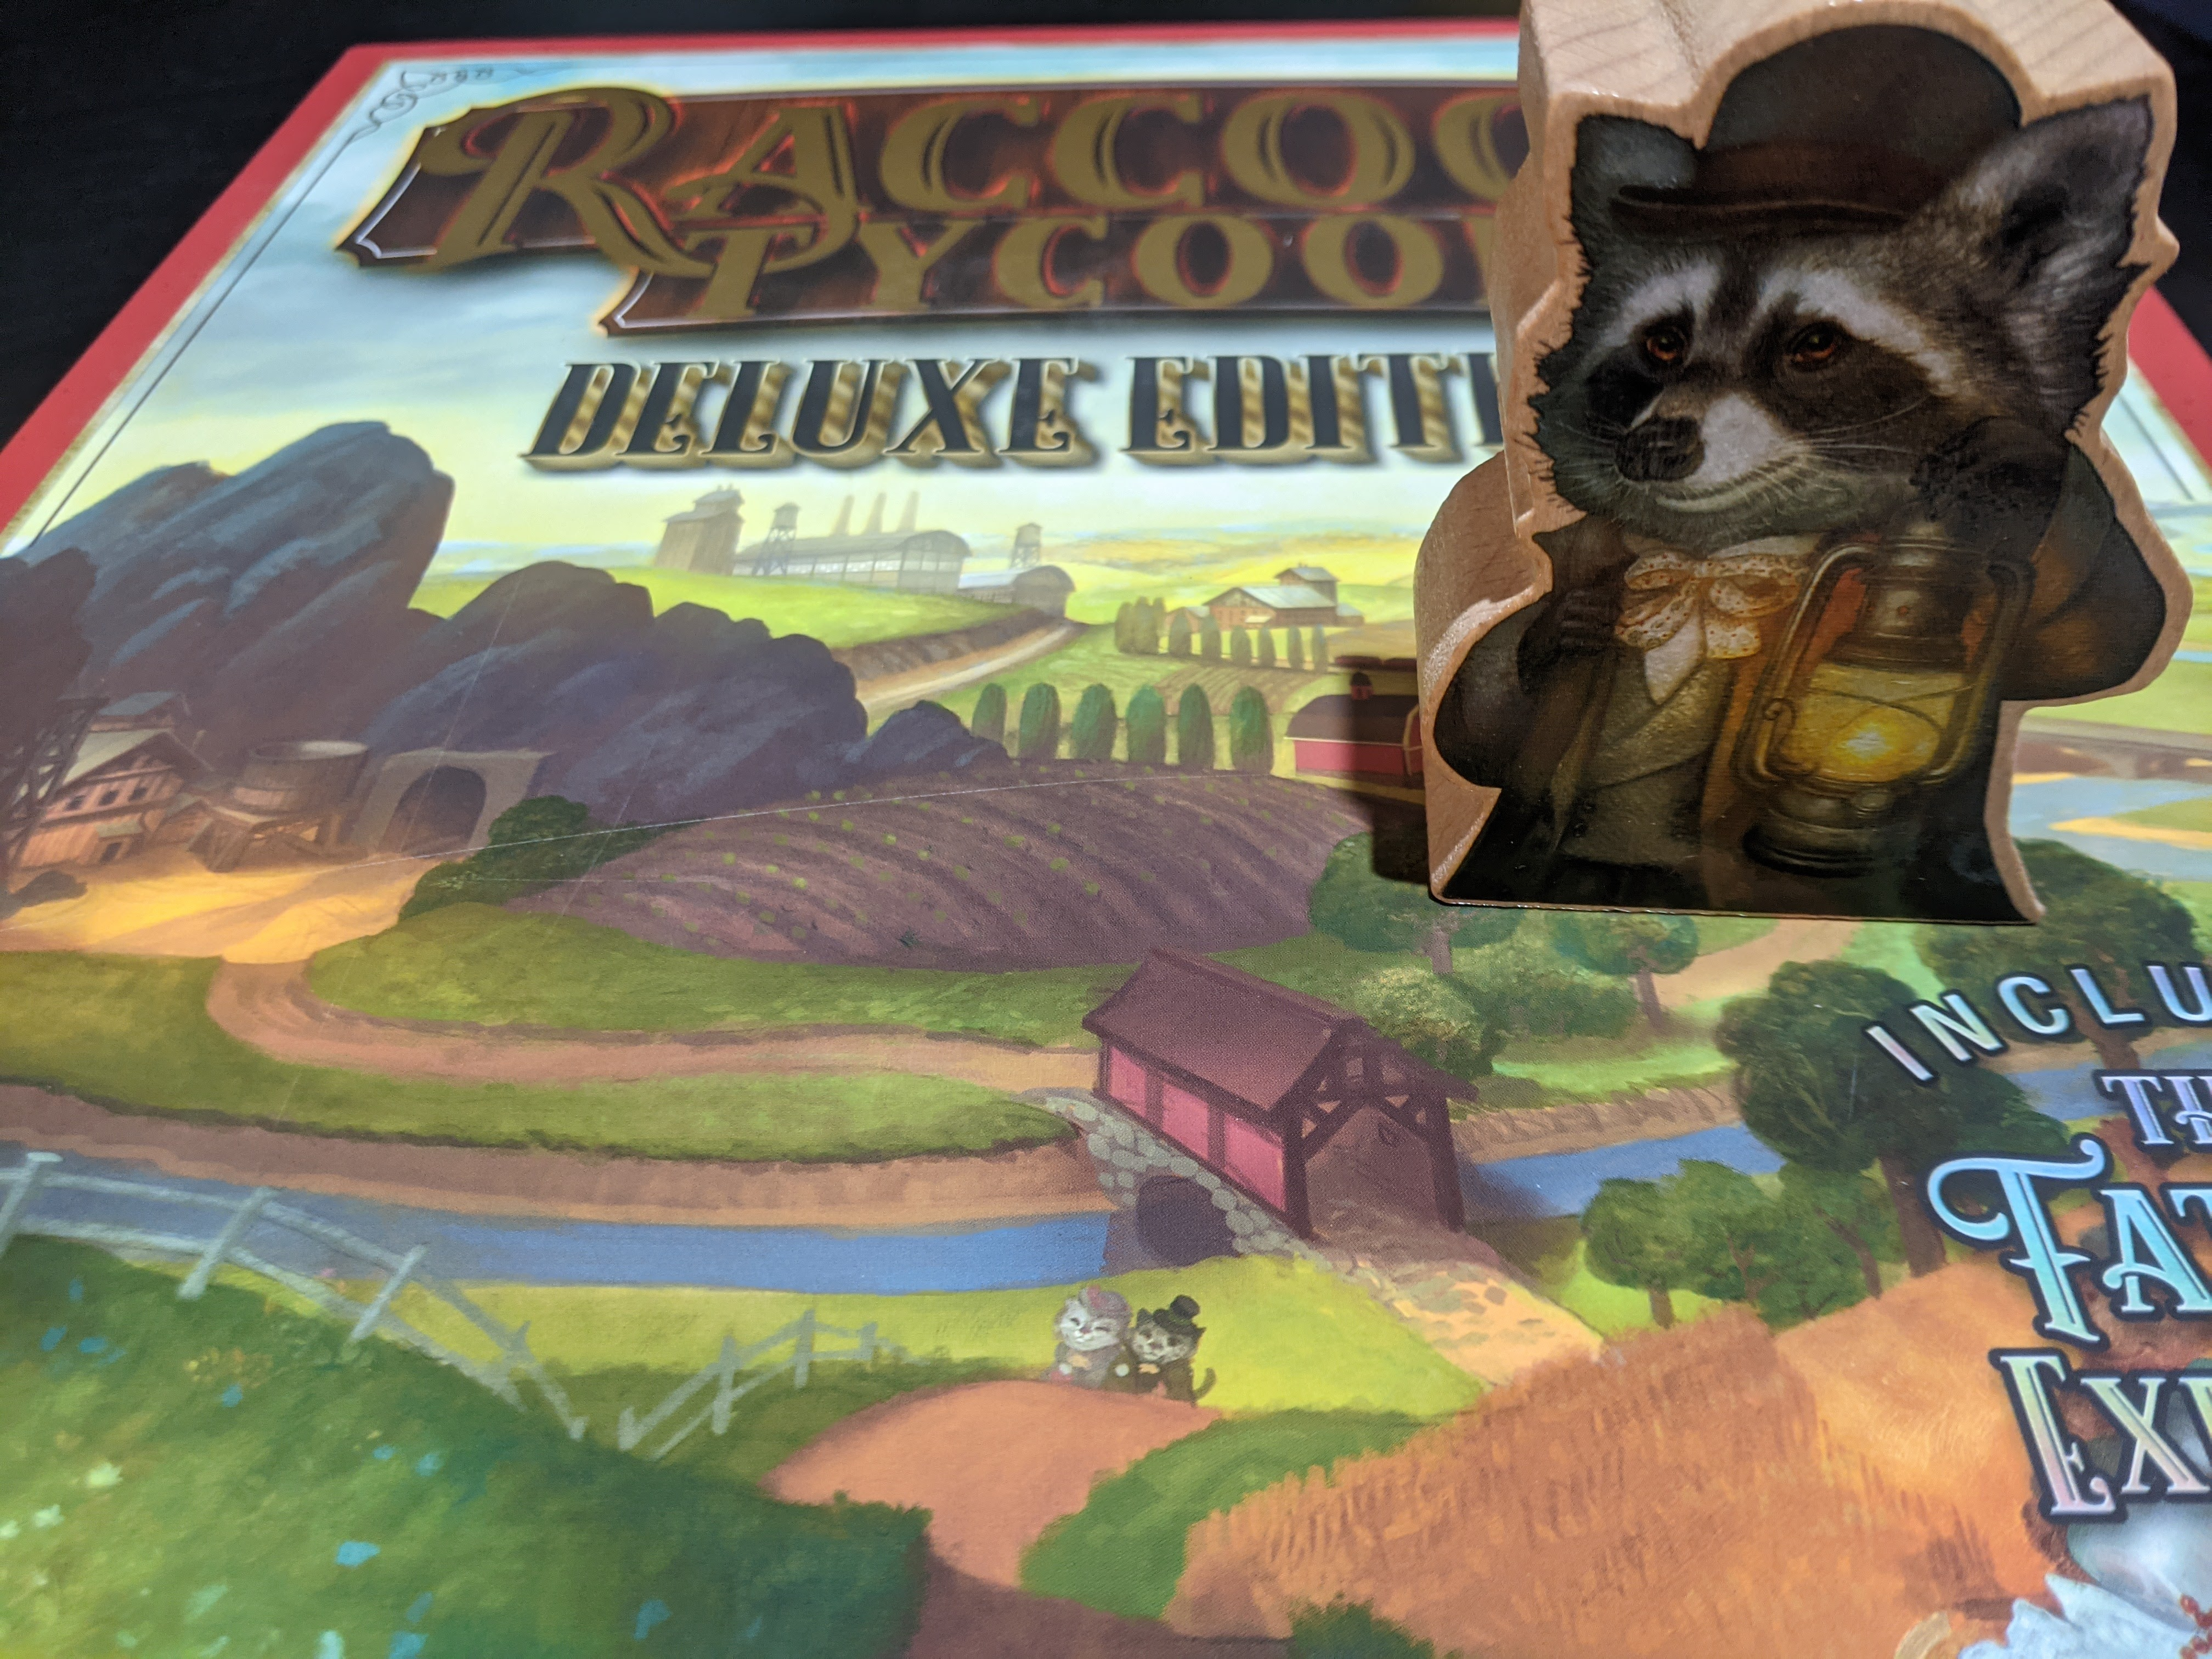 The first player marker is this massive wooden raccoon, sitting on top of the box of Raccoon Tycoon.